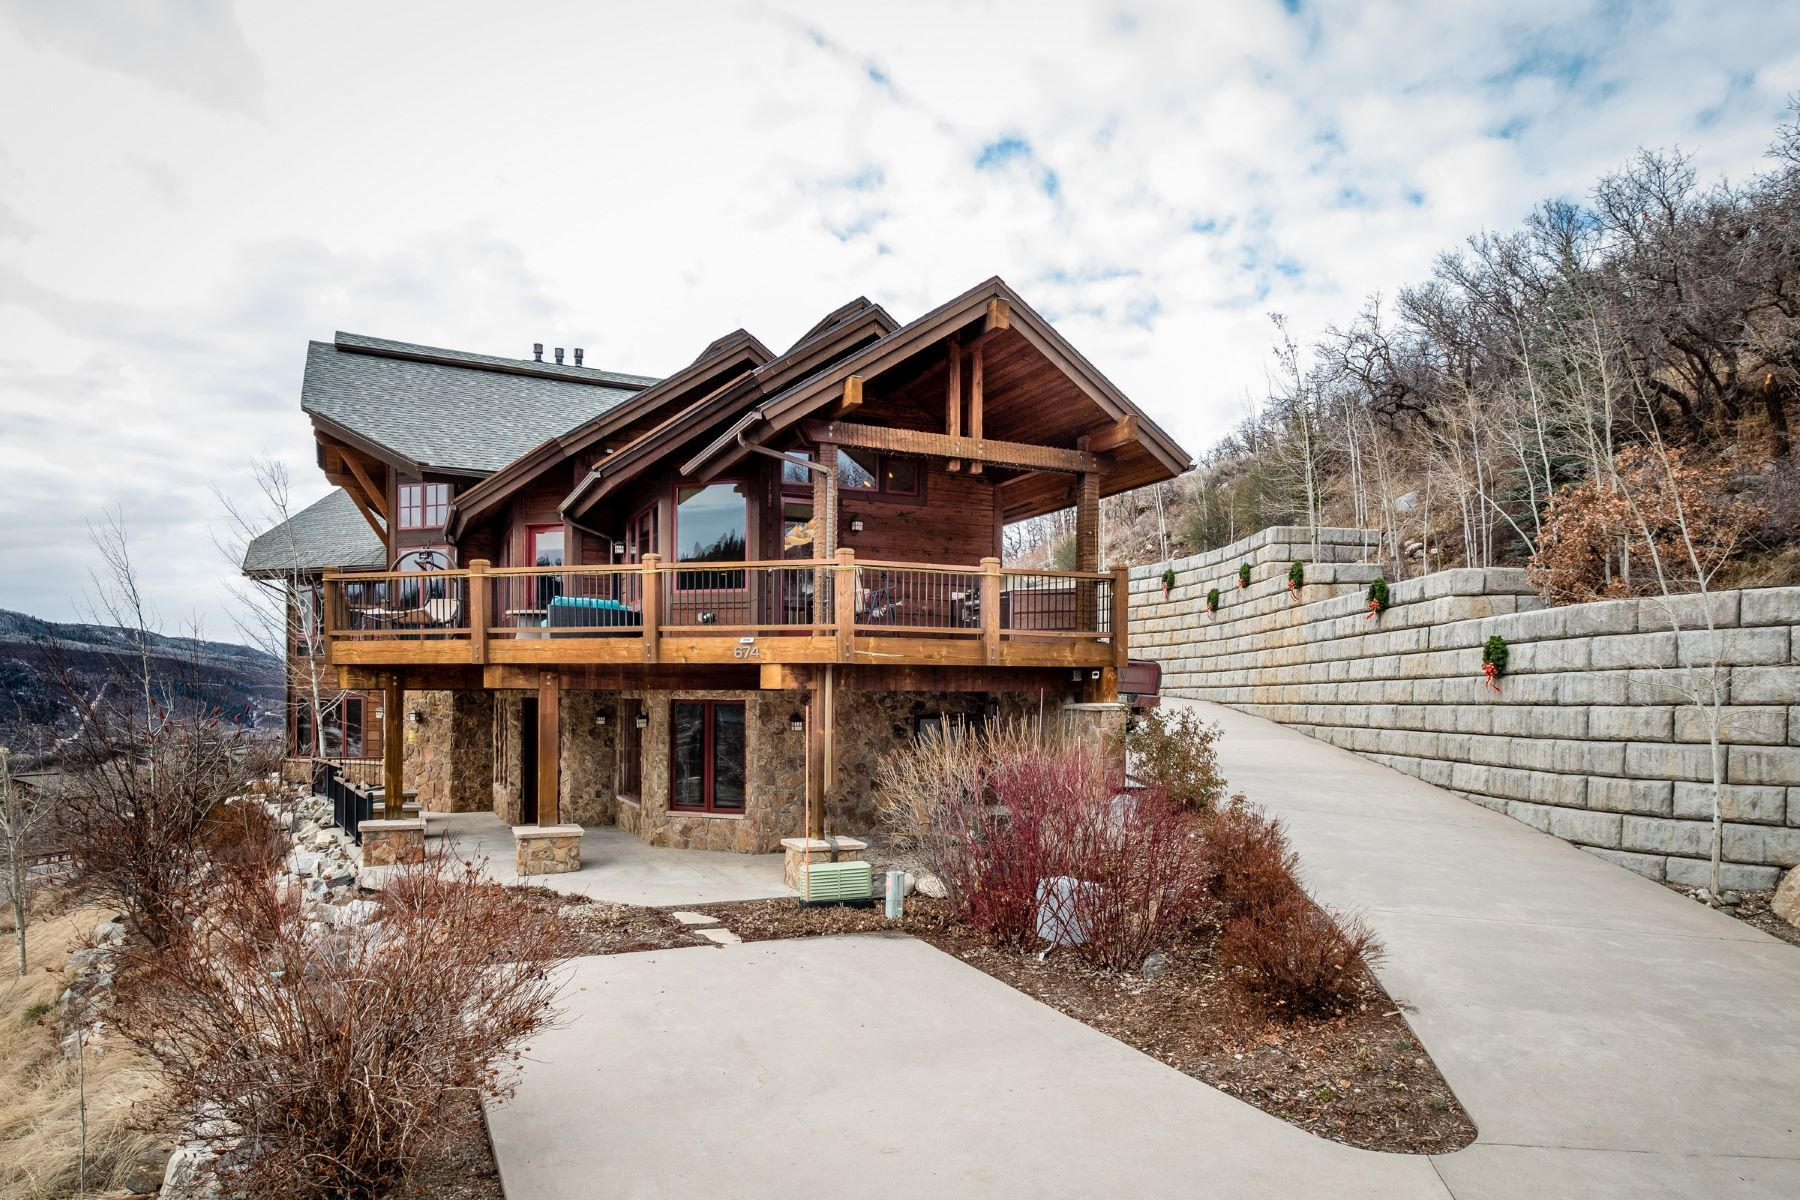 Single Family Home for Sale at Luxury Sanctuary Home 674 Steamboat Boulevard Steamboat Springs, Colorado 80487 United States